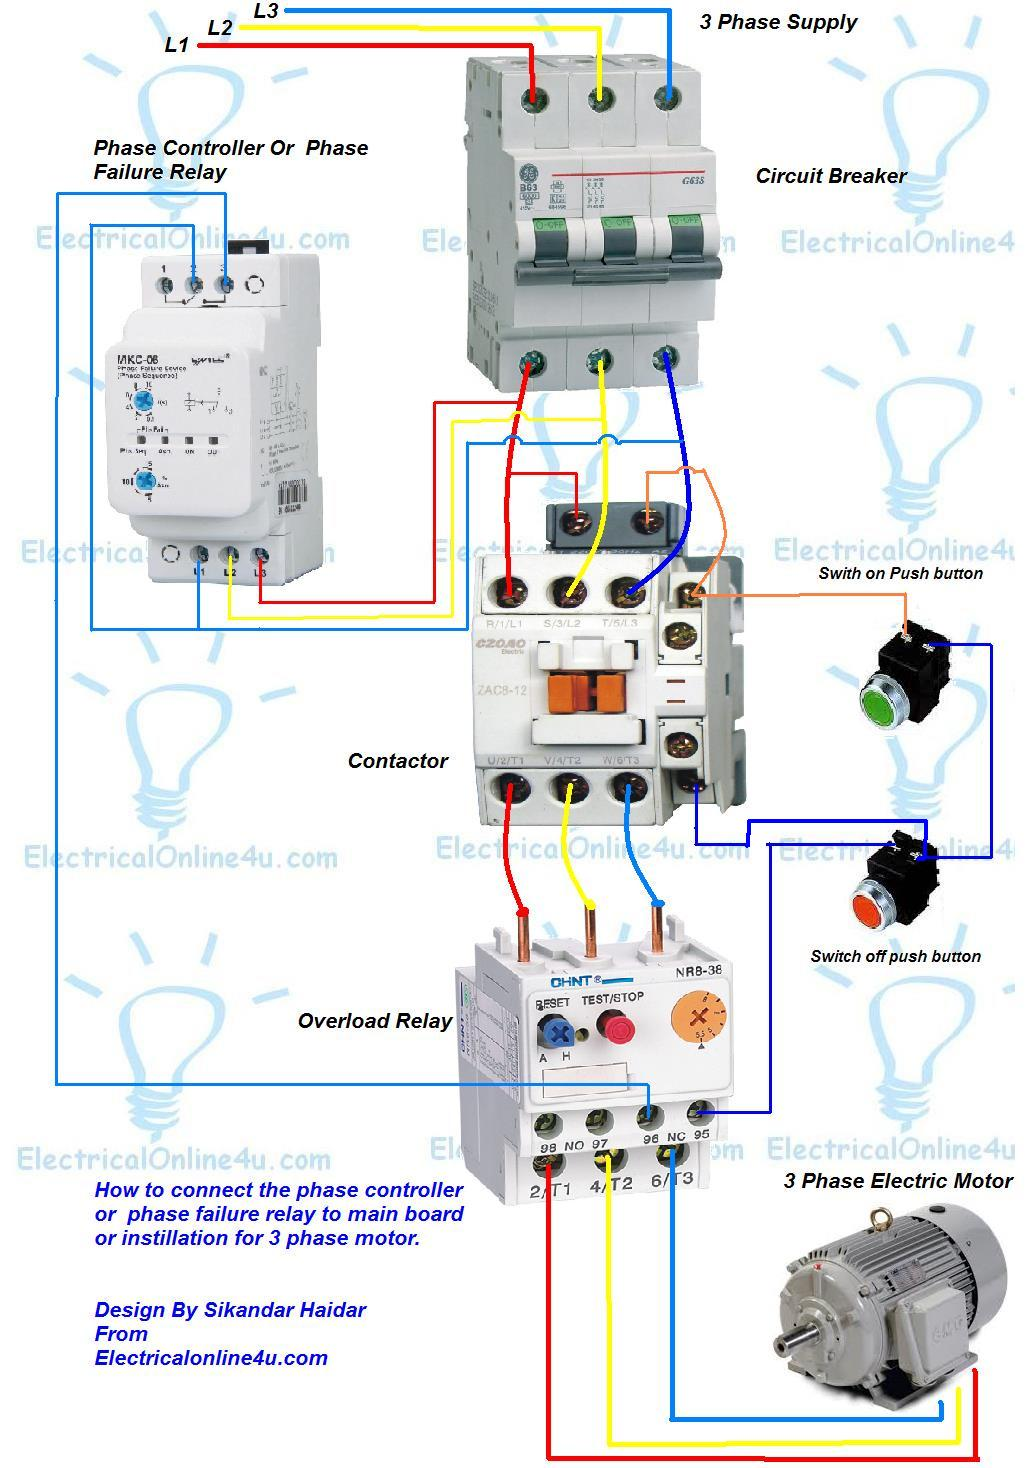 wiring diagram of contactor lincoln ranger 8 welder single phase overload relay great installation controller failure compressor